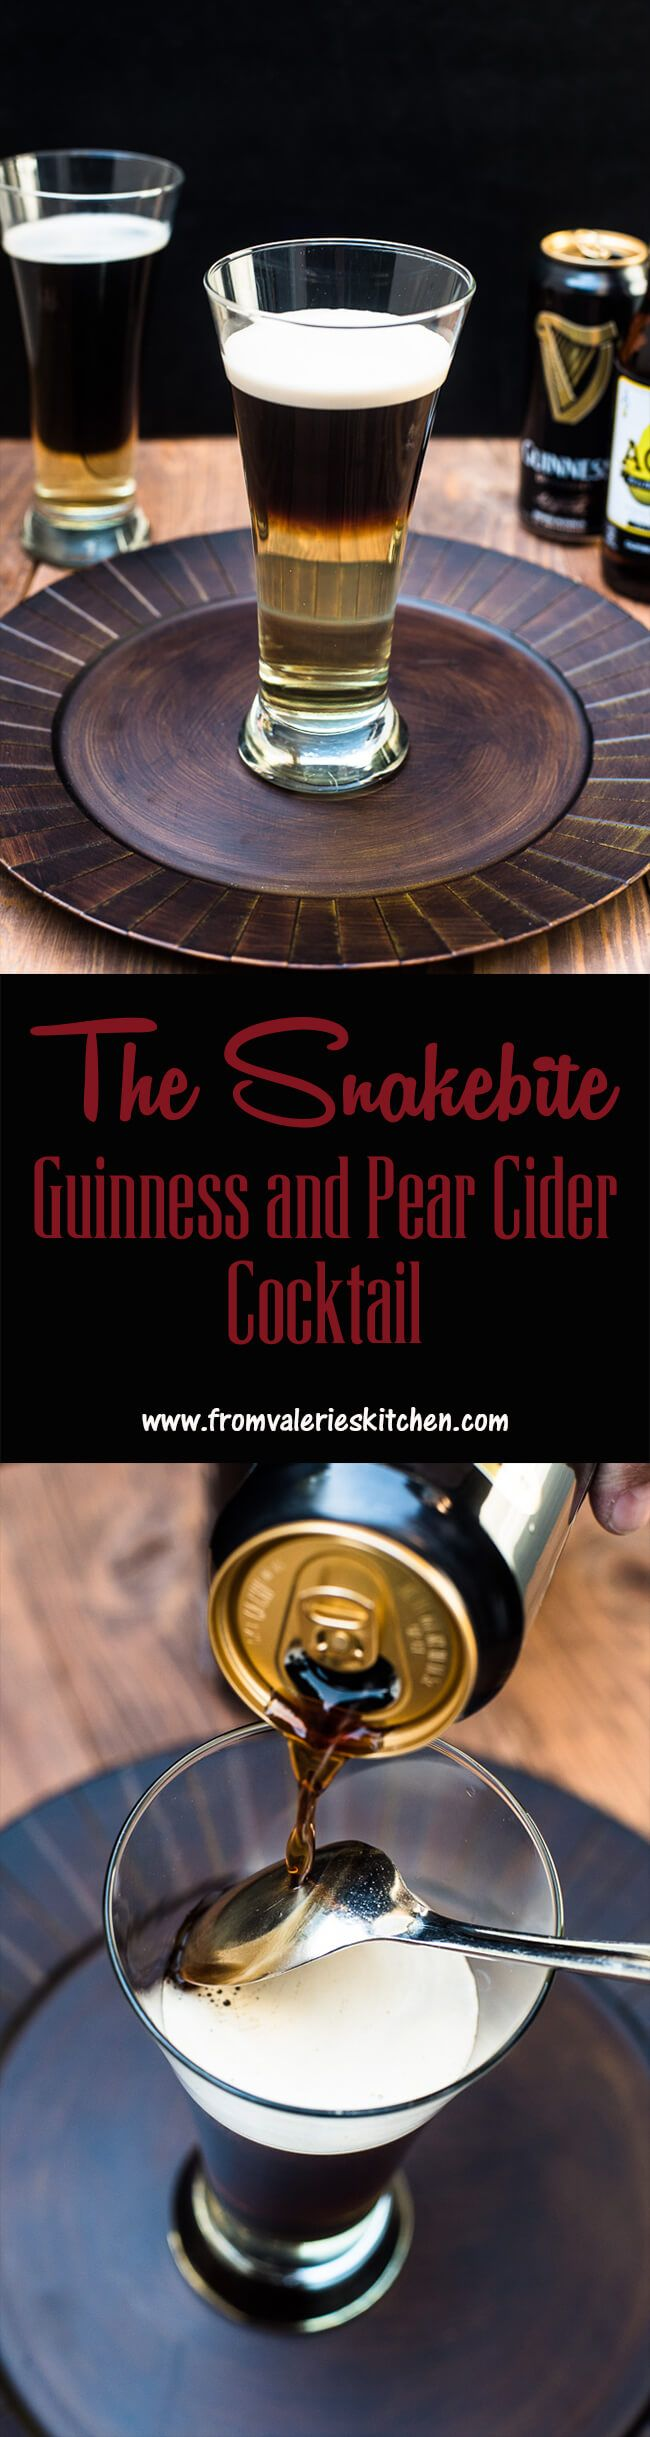 A layered beer cocktail made with Guinness and Pear Cider. Easy to make once you learn the clever layering technique! ~ http://www.fromvalerieskitchen.com